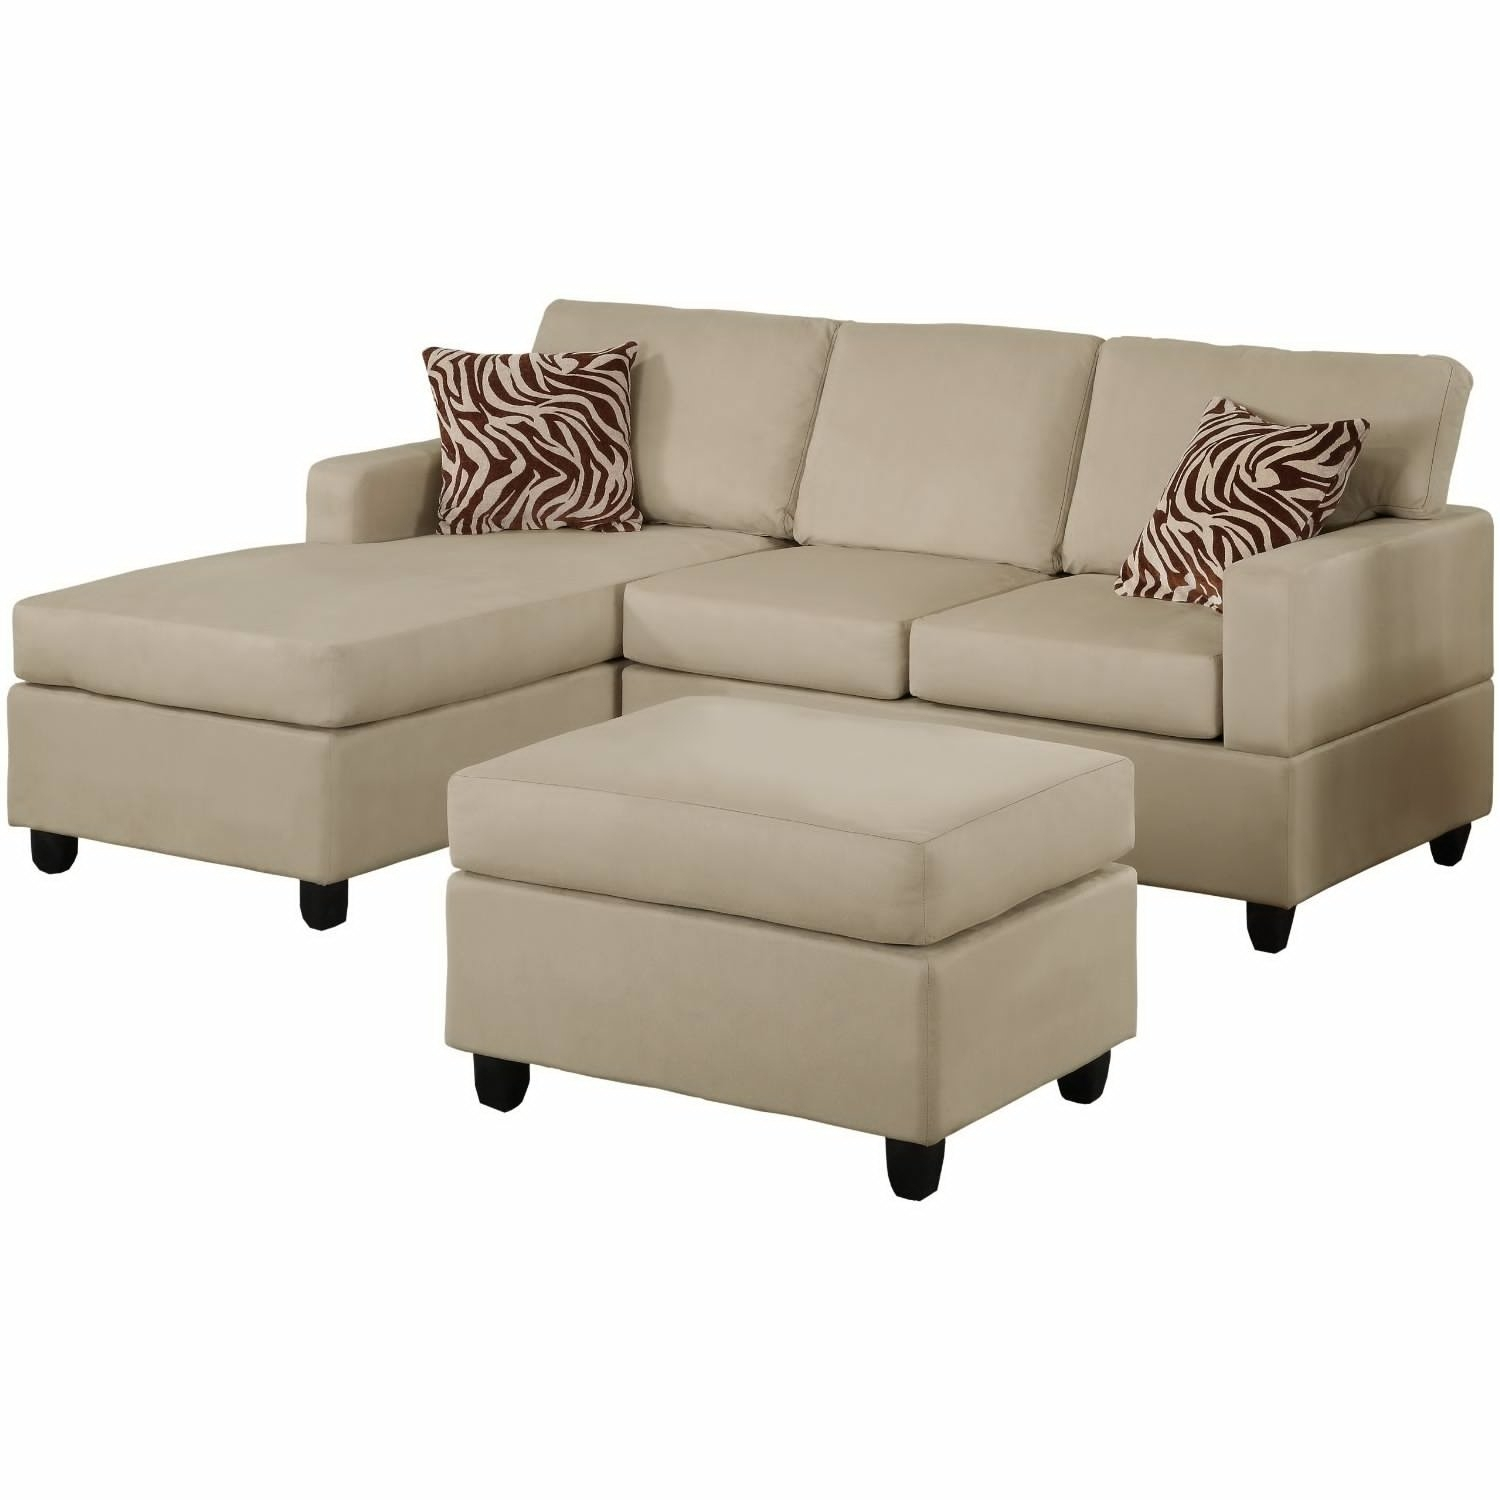 Featured Image of Thomasville Sectional Sofas